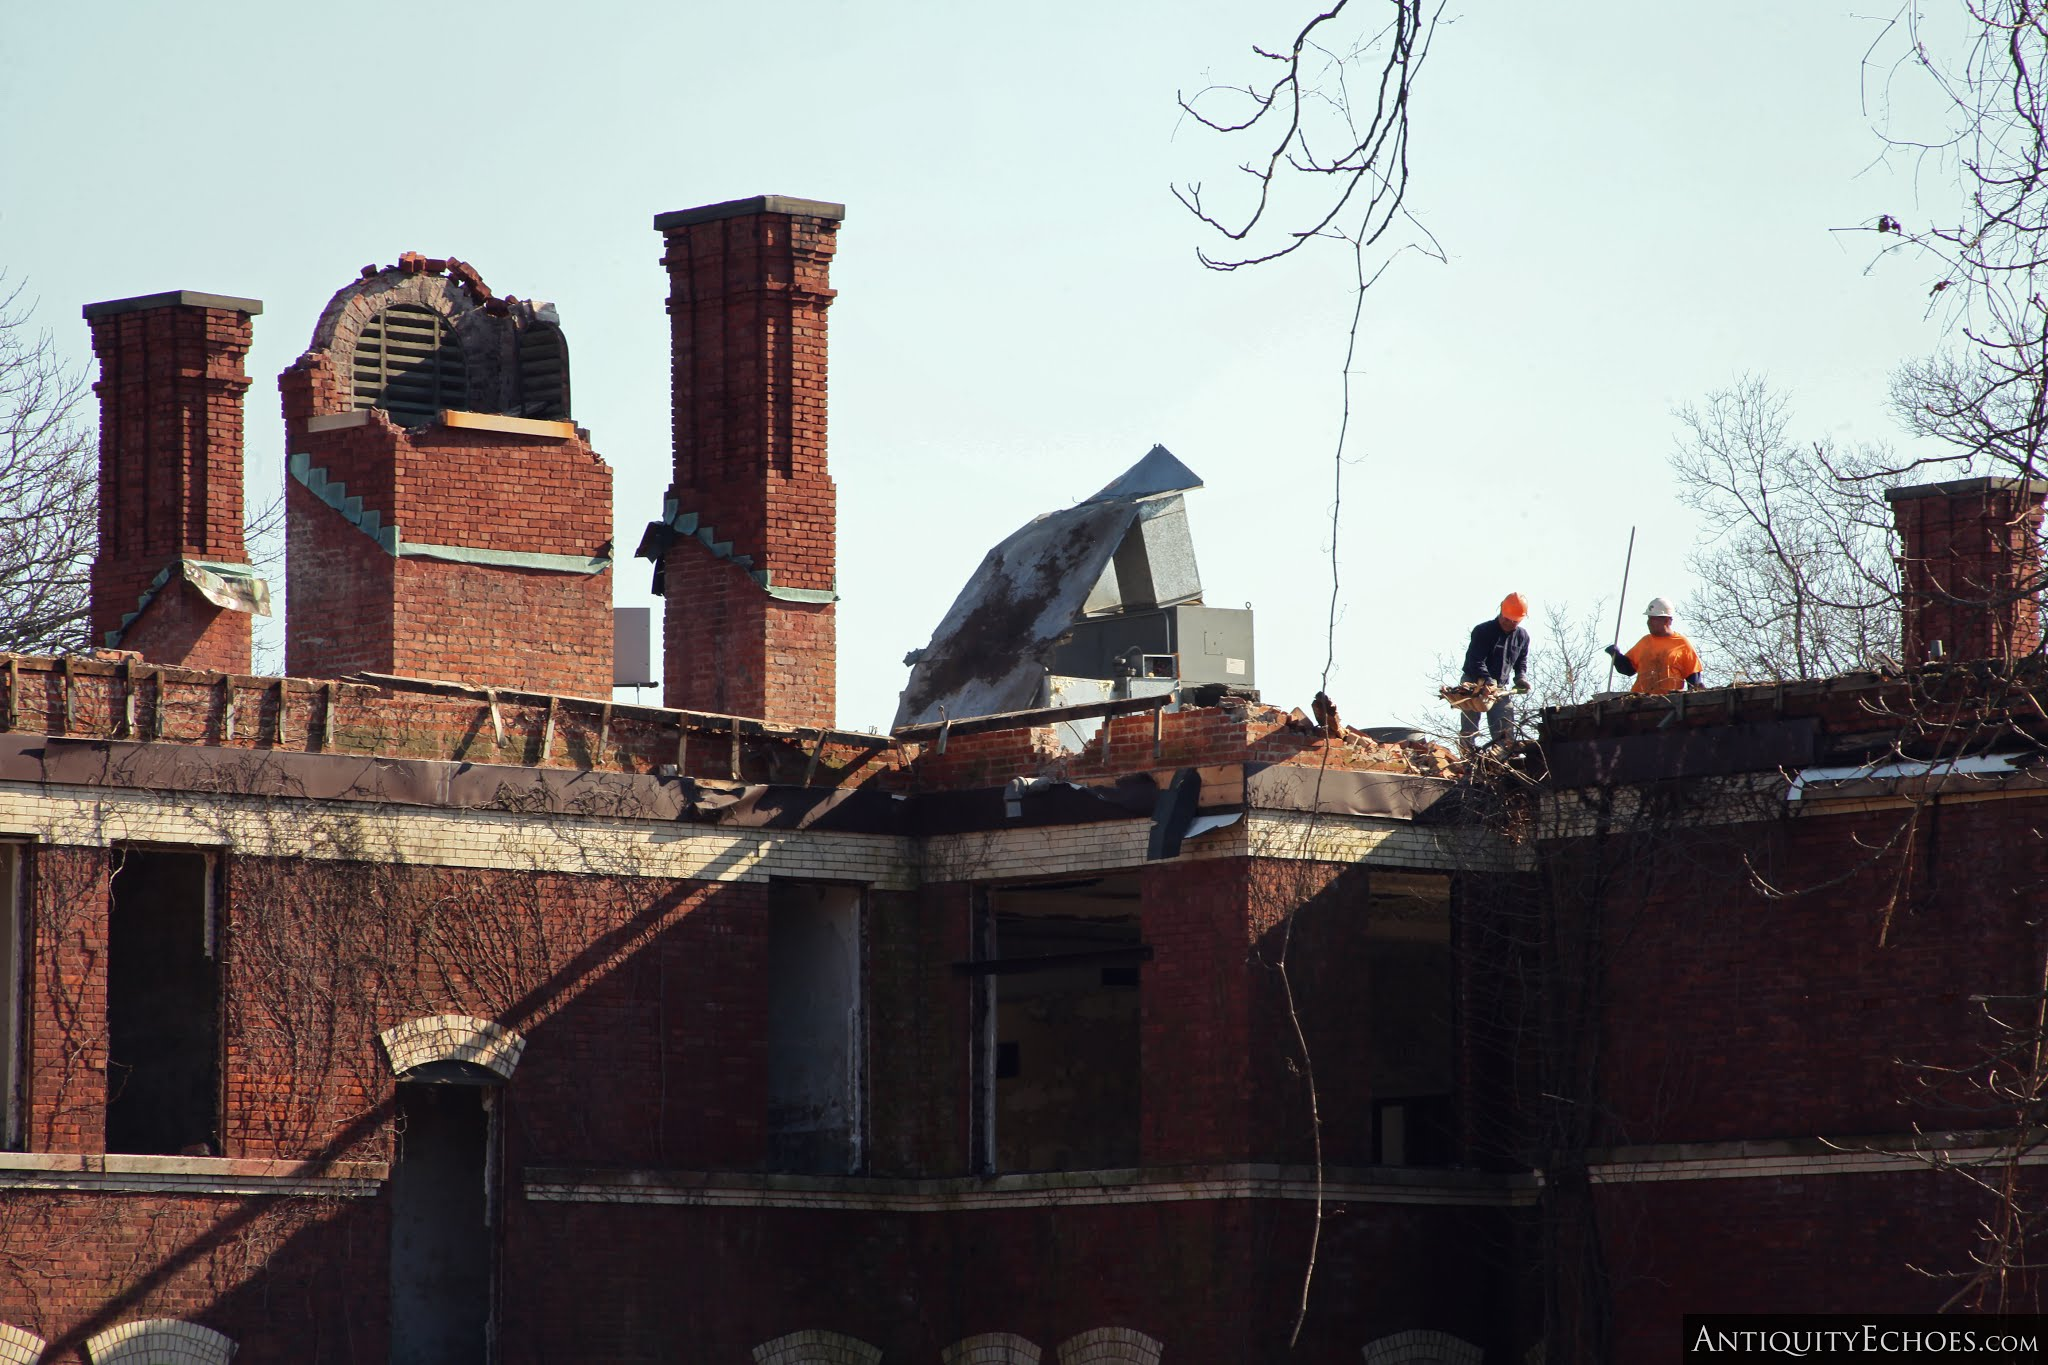 Overbrook Asylum - Workers Remove Debris from a Rooftop